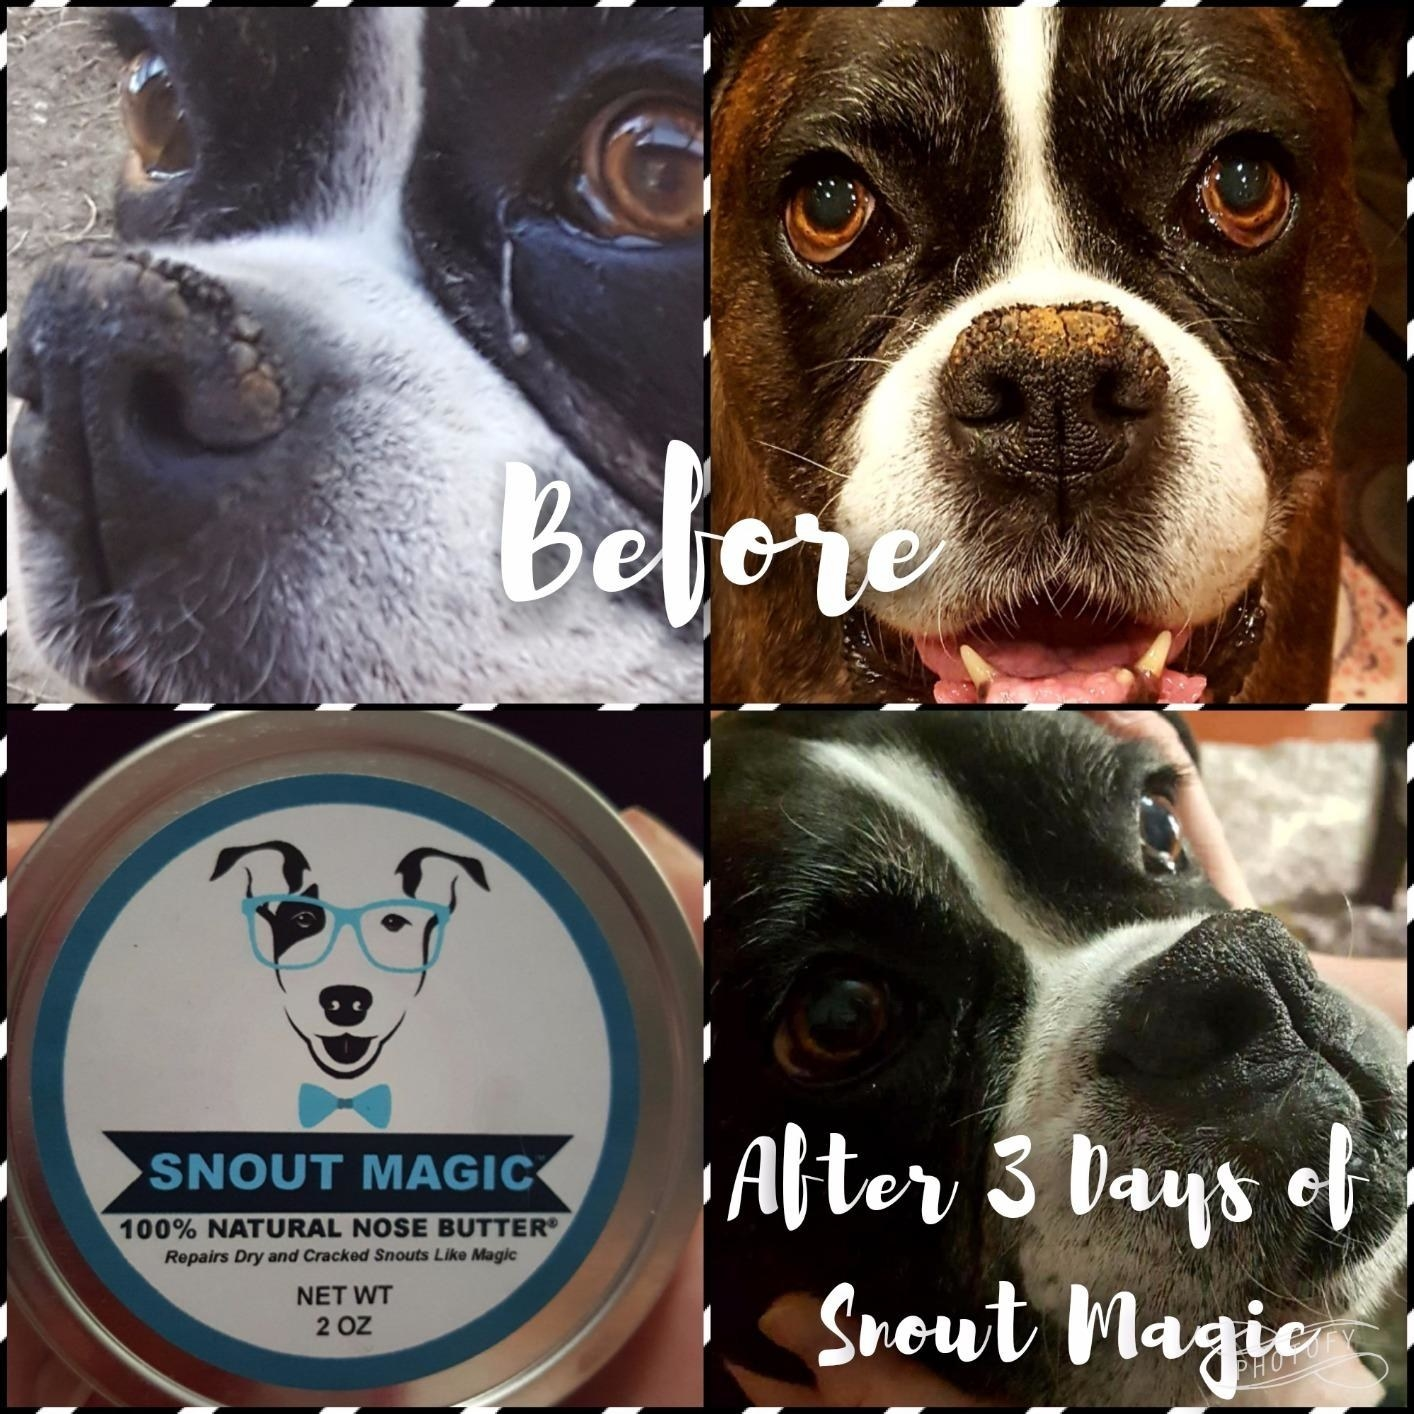 Reviewer's photo showing their black and white dog's nose before and after using snout magic